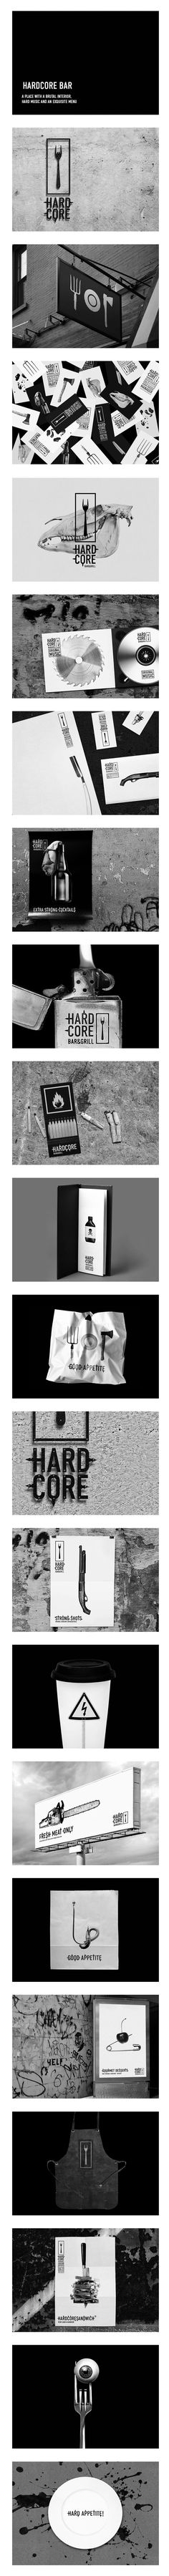 Hardcore bar #identity #packaging #branding PD